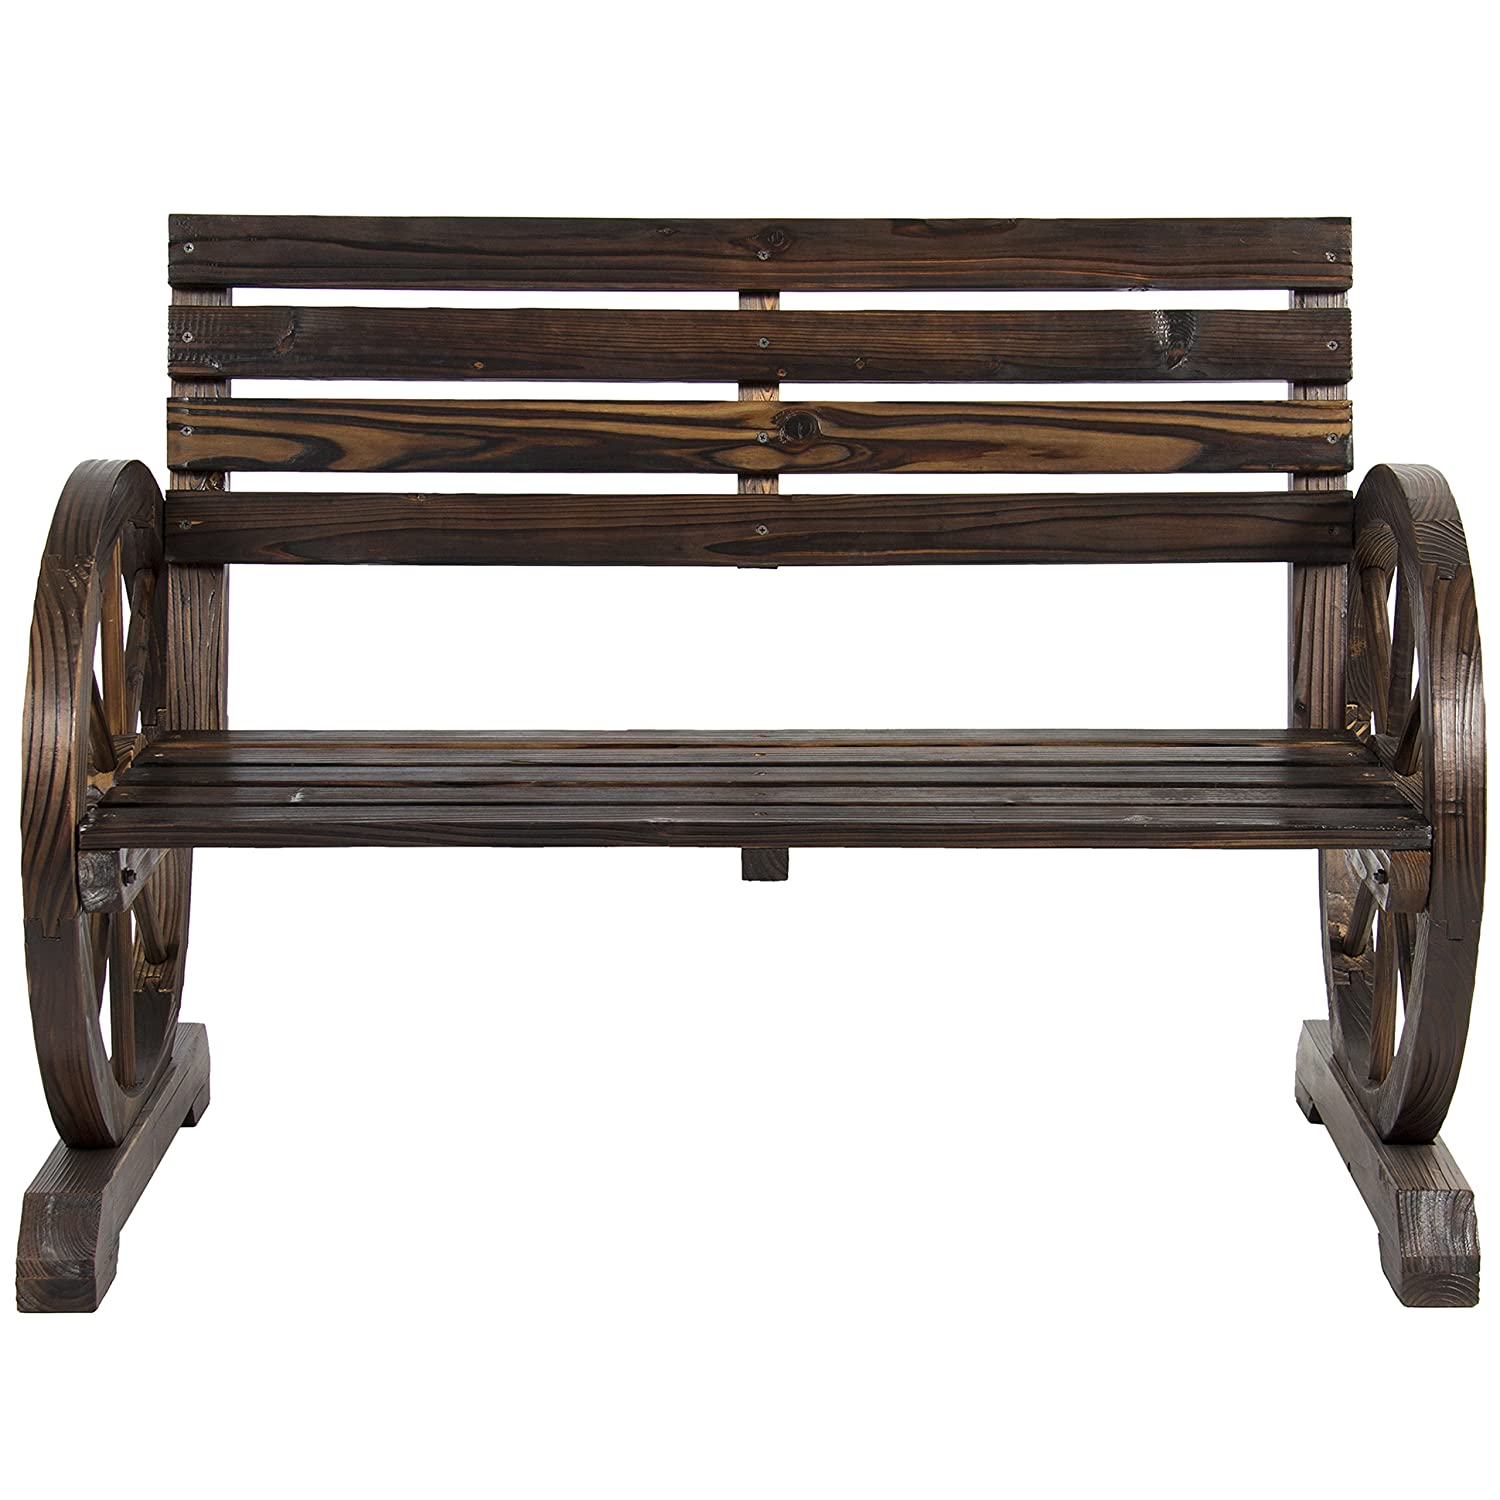 wagon large gardenia rustic design bench gardner antique wheel com garden home meaning medium size of set white canton furniture wood